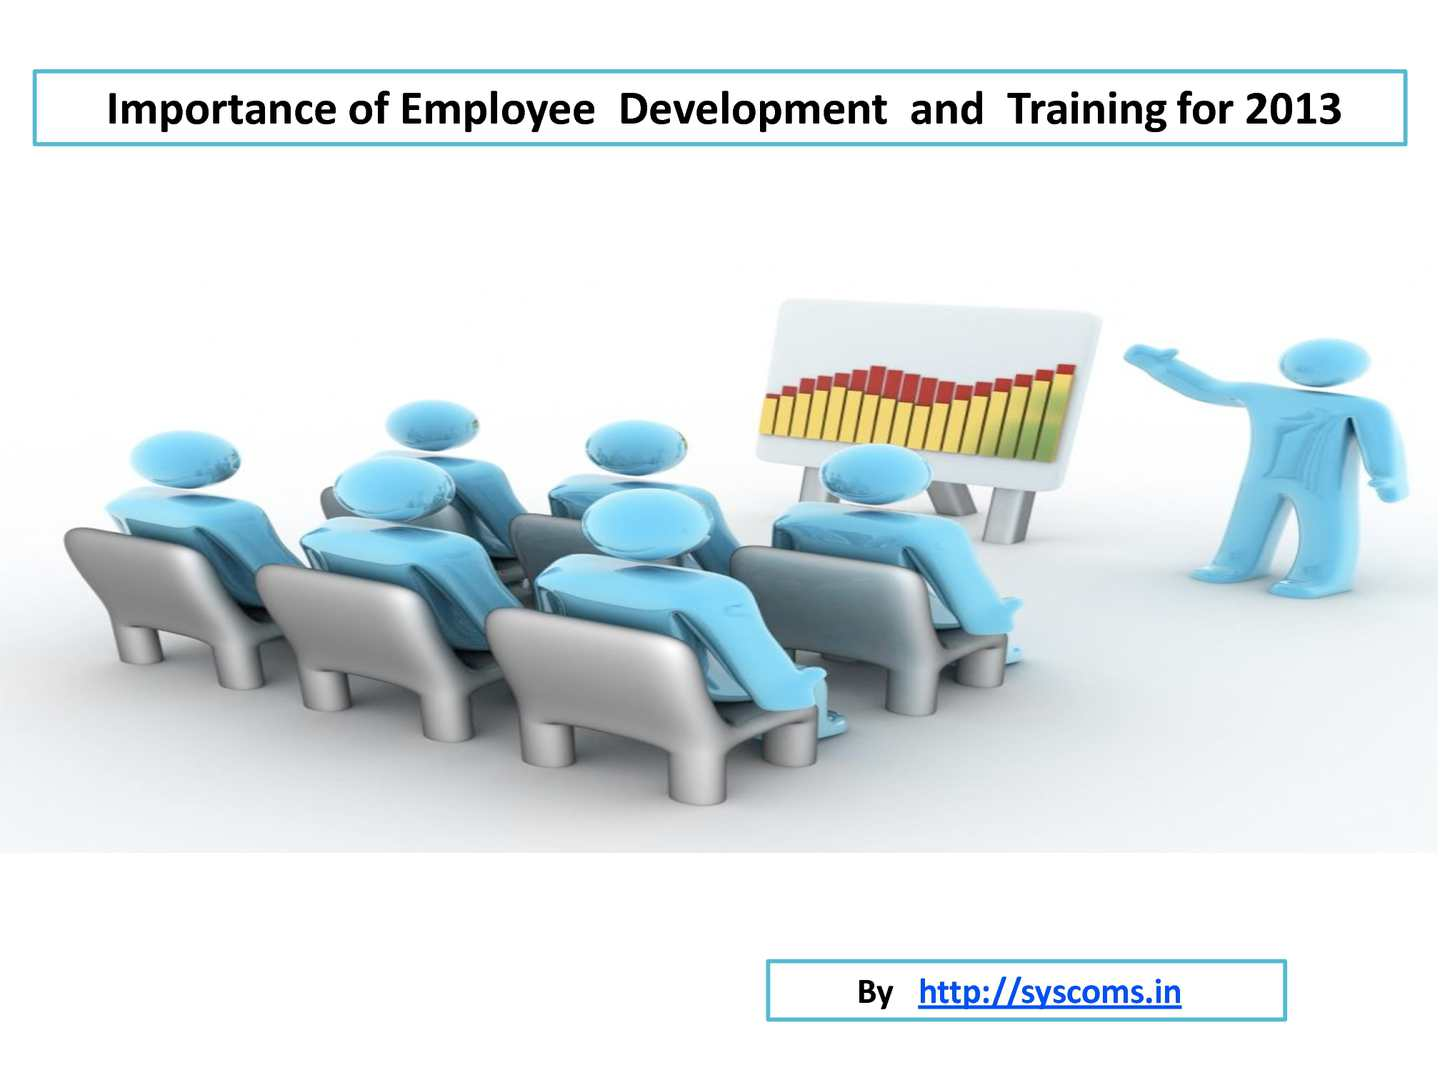 employee training and development an important Learn more about employee training creates opportunities for career development and personal growth, an important has found that employers with high employee.